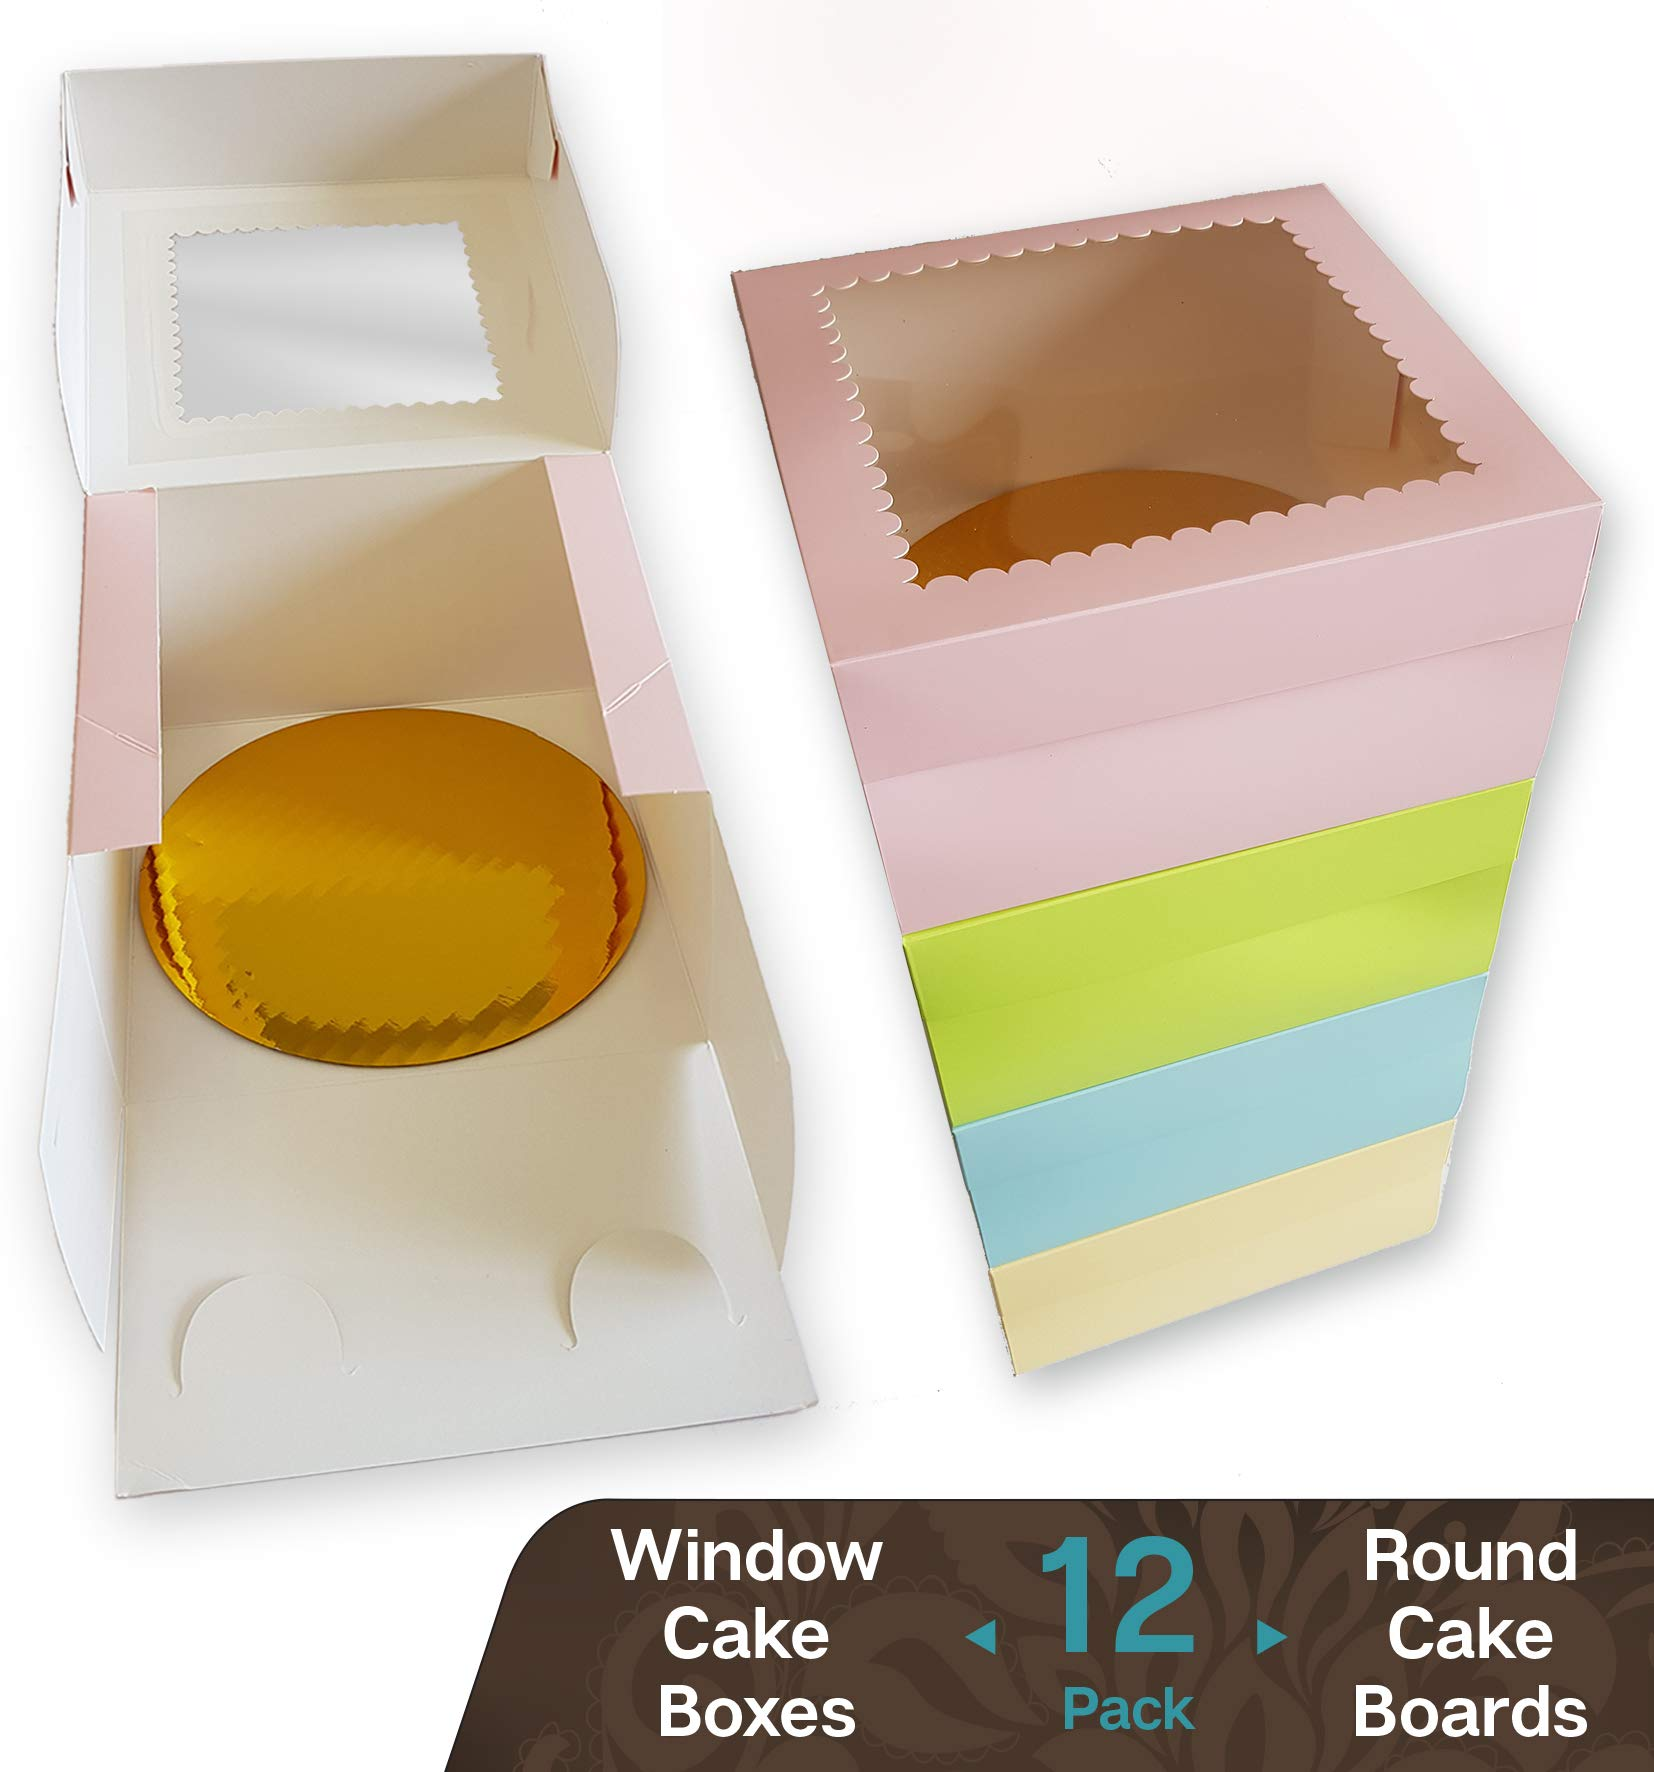 CooKeezz Couture - Cake Box - Colored Window Bakery Packaging Decorated Boxes Great for Donuts , Bakery , Pies - Assorted 12 Pack Decorated Boxes in 4 Pastel Colors , Included 12 Round Cake Boards (12x12x5)